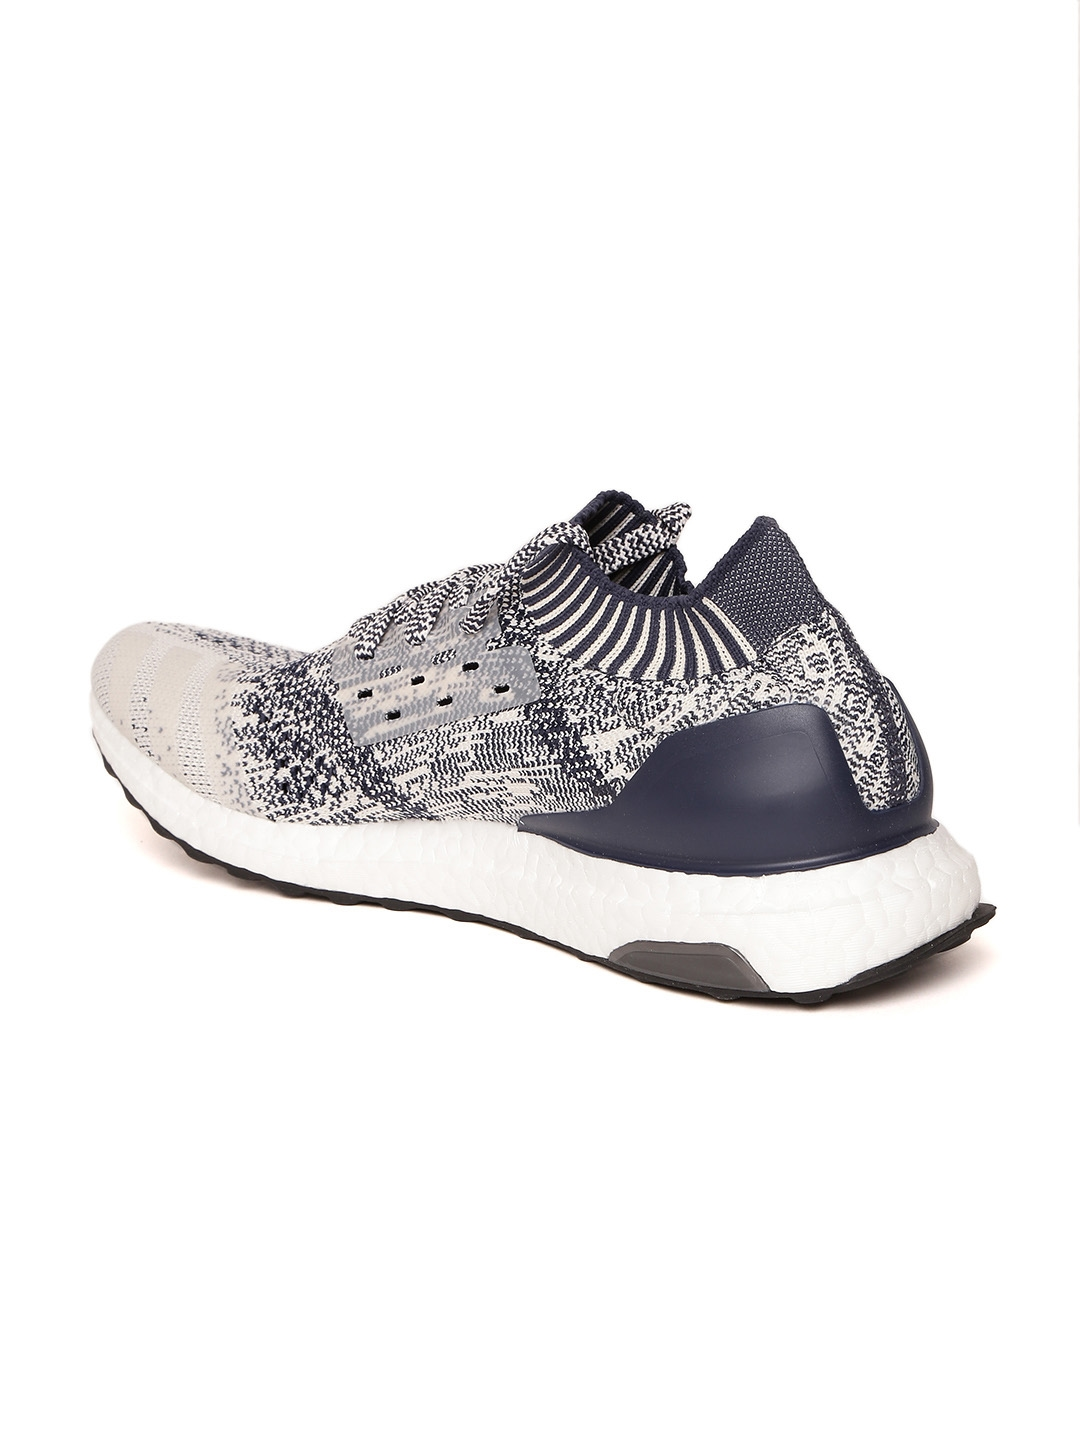 4bd5e2f79283 Buy Adidas Men Off White   Navy Ultraboost Uncaged Running Shoes ...